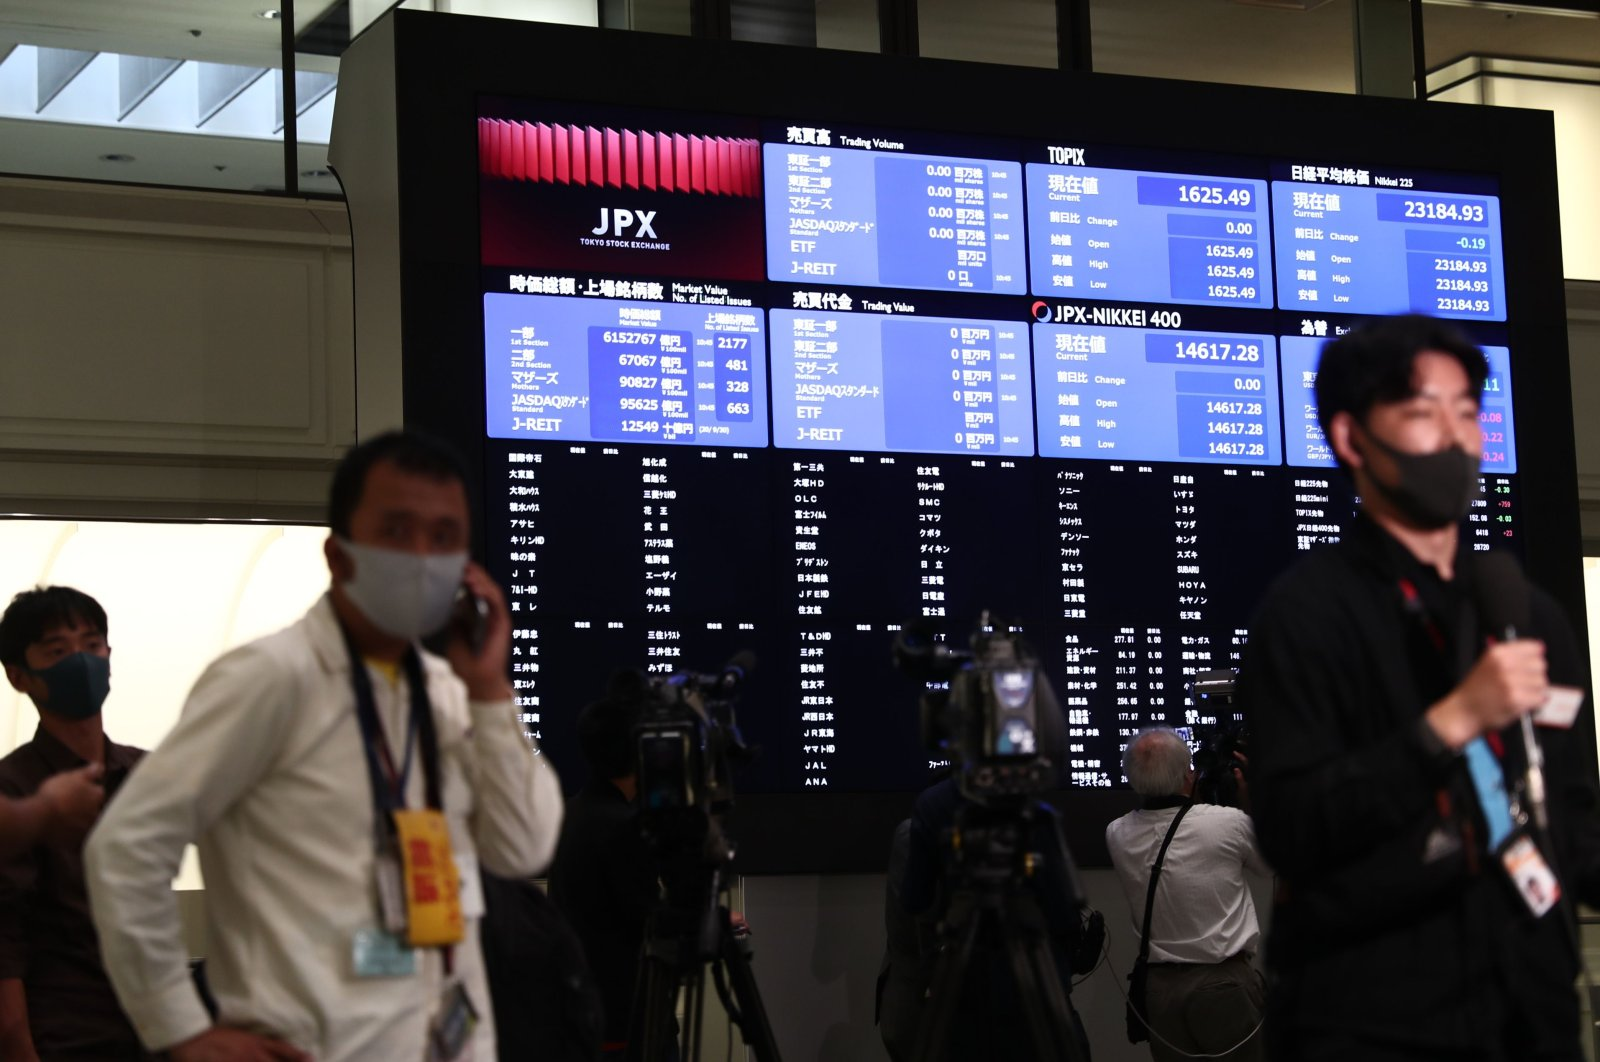 Journalists gather next to an information board inside the Tokyo Stock Exchange where trading was halted due to a glitch on the market in Tokyo, Oct. 1, 2020. (AFP Photo)